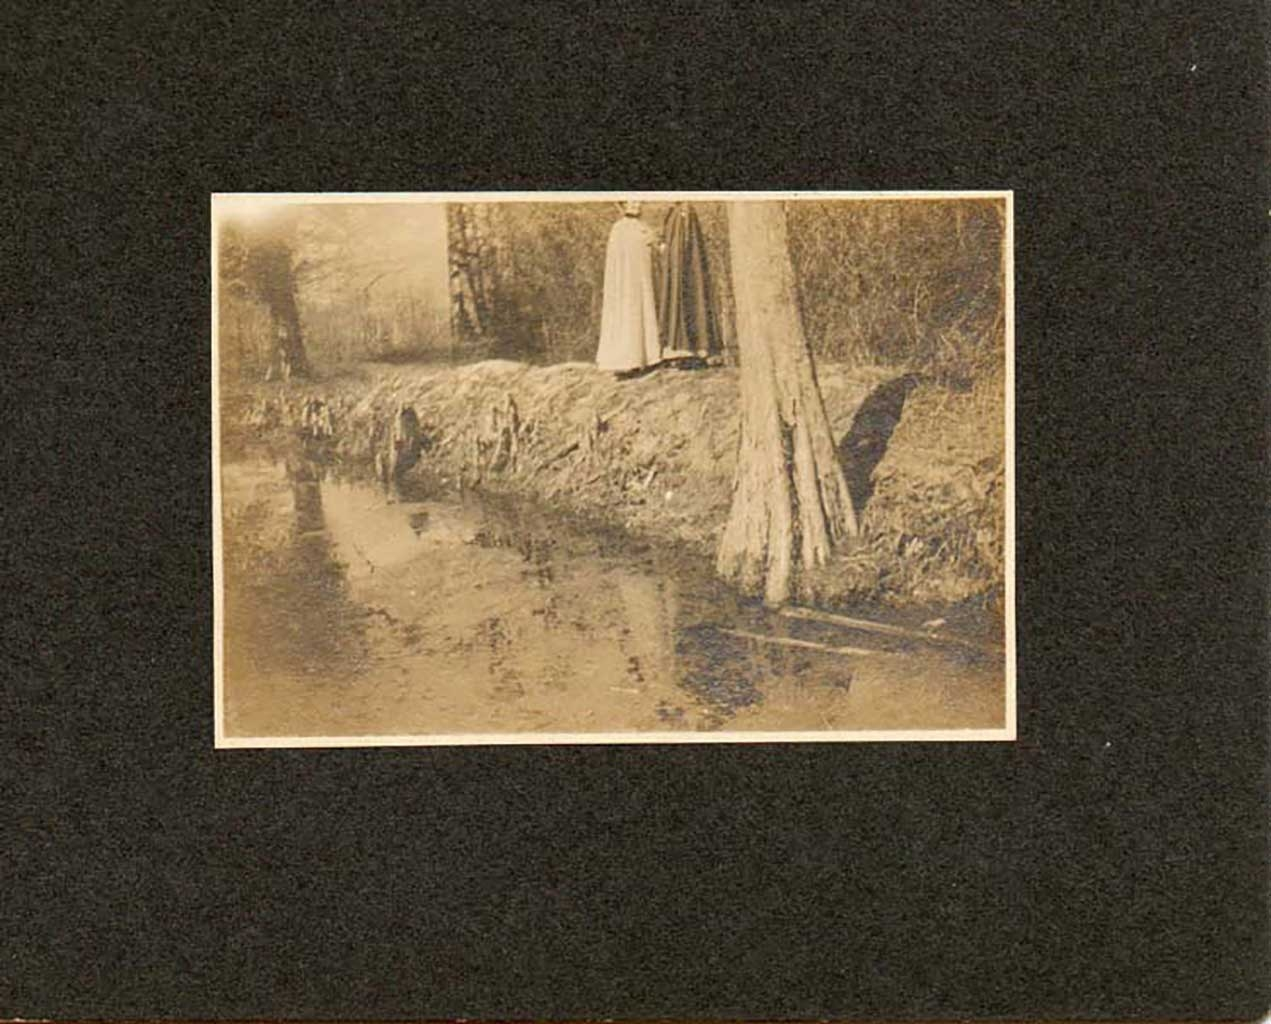 chuckatuck-creek-just-below-grist-mill-1909-img051